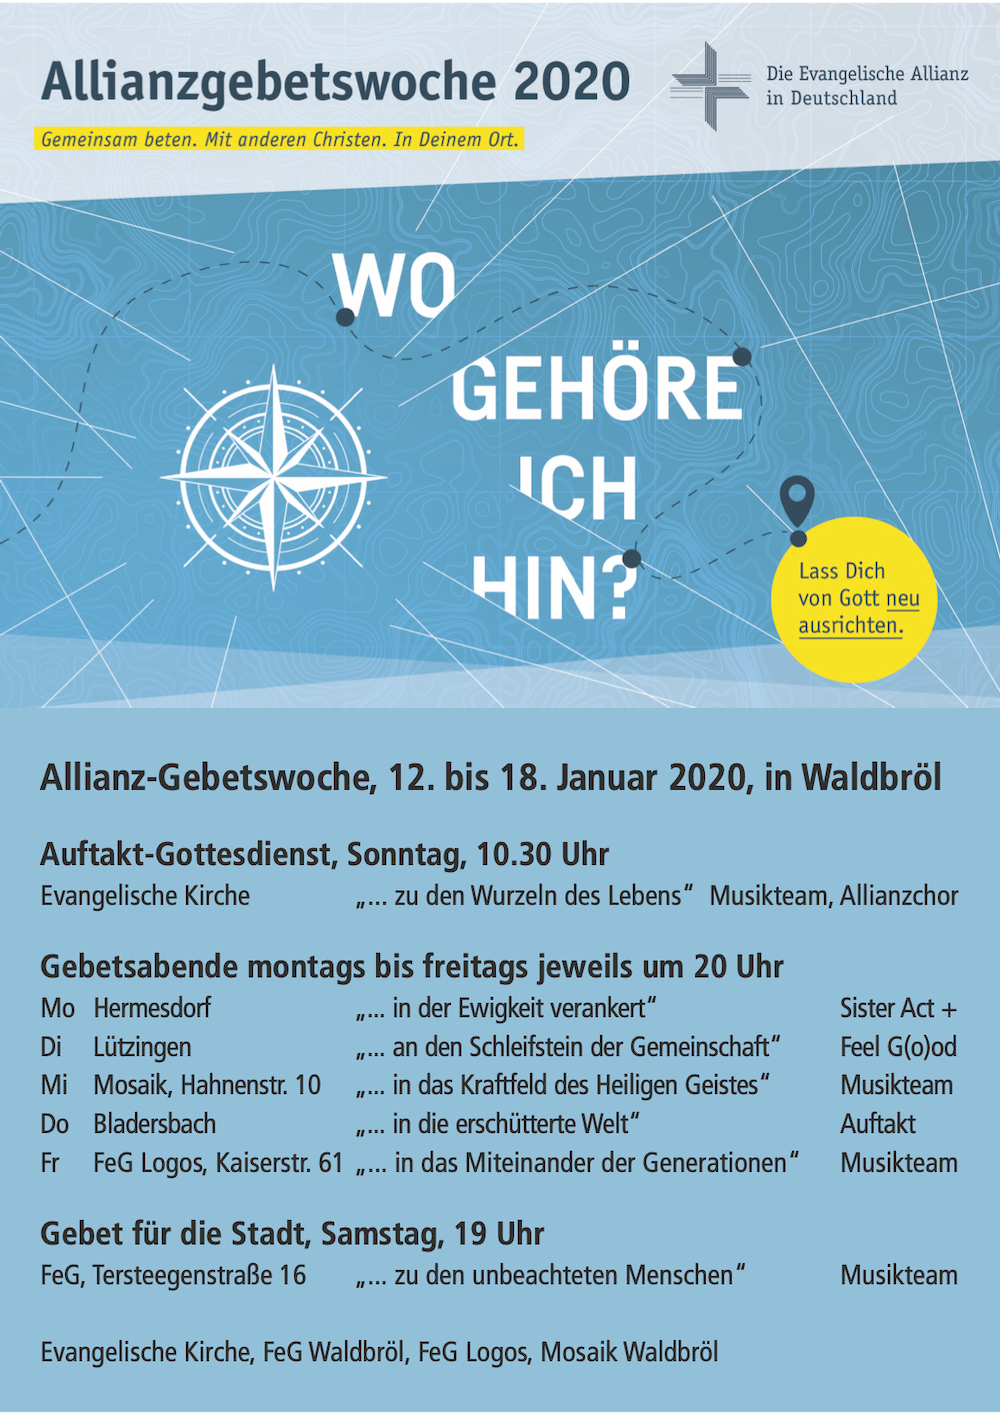 Allianz Gebetswoche 2020